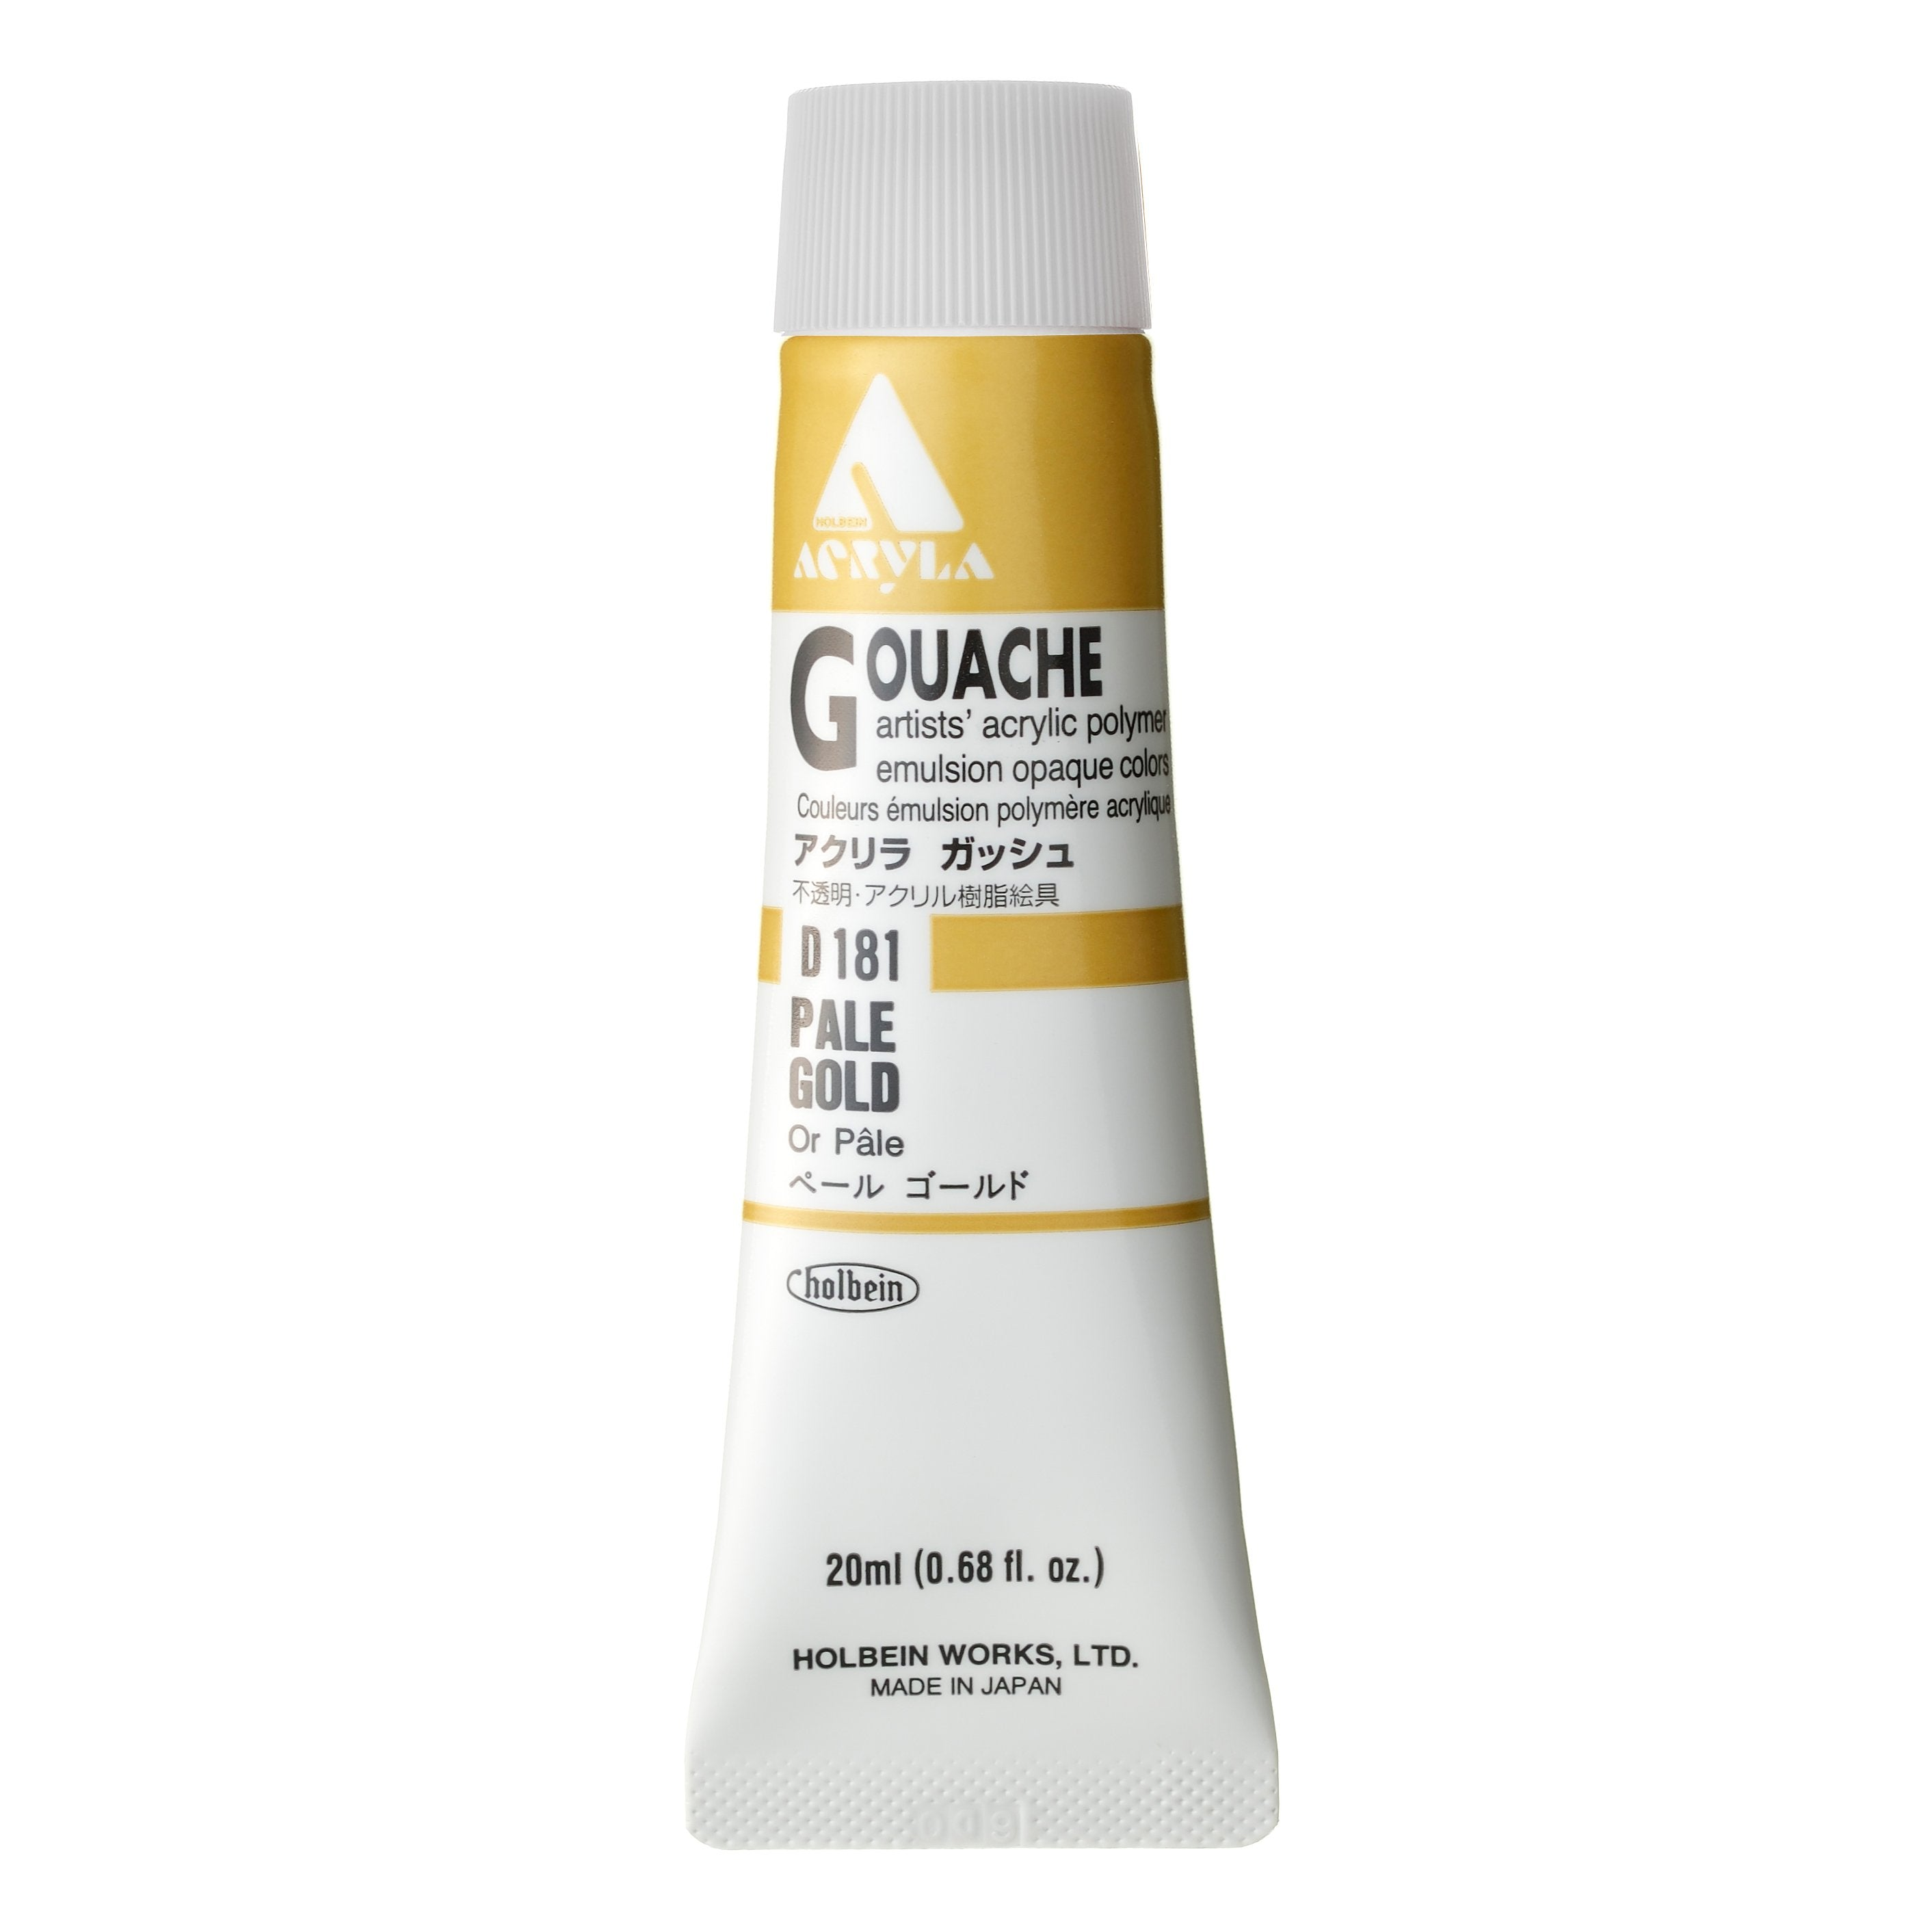 Holbein Acryla Gouache, 20ml, Pale Gold